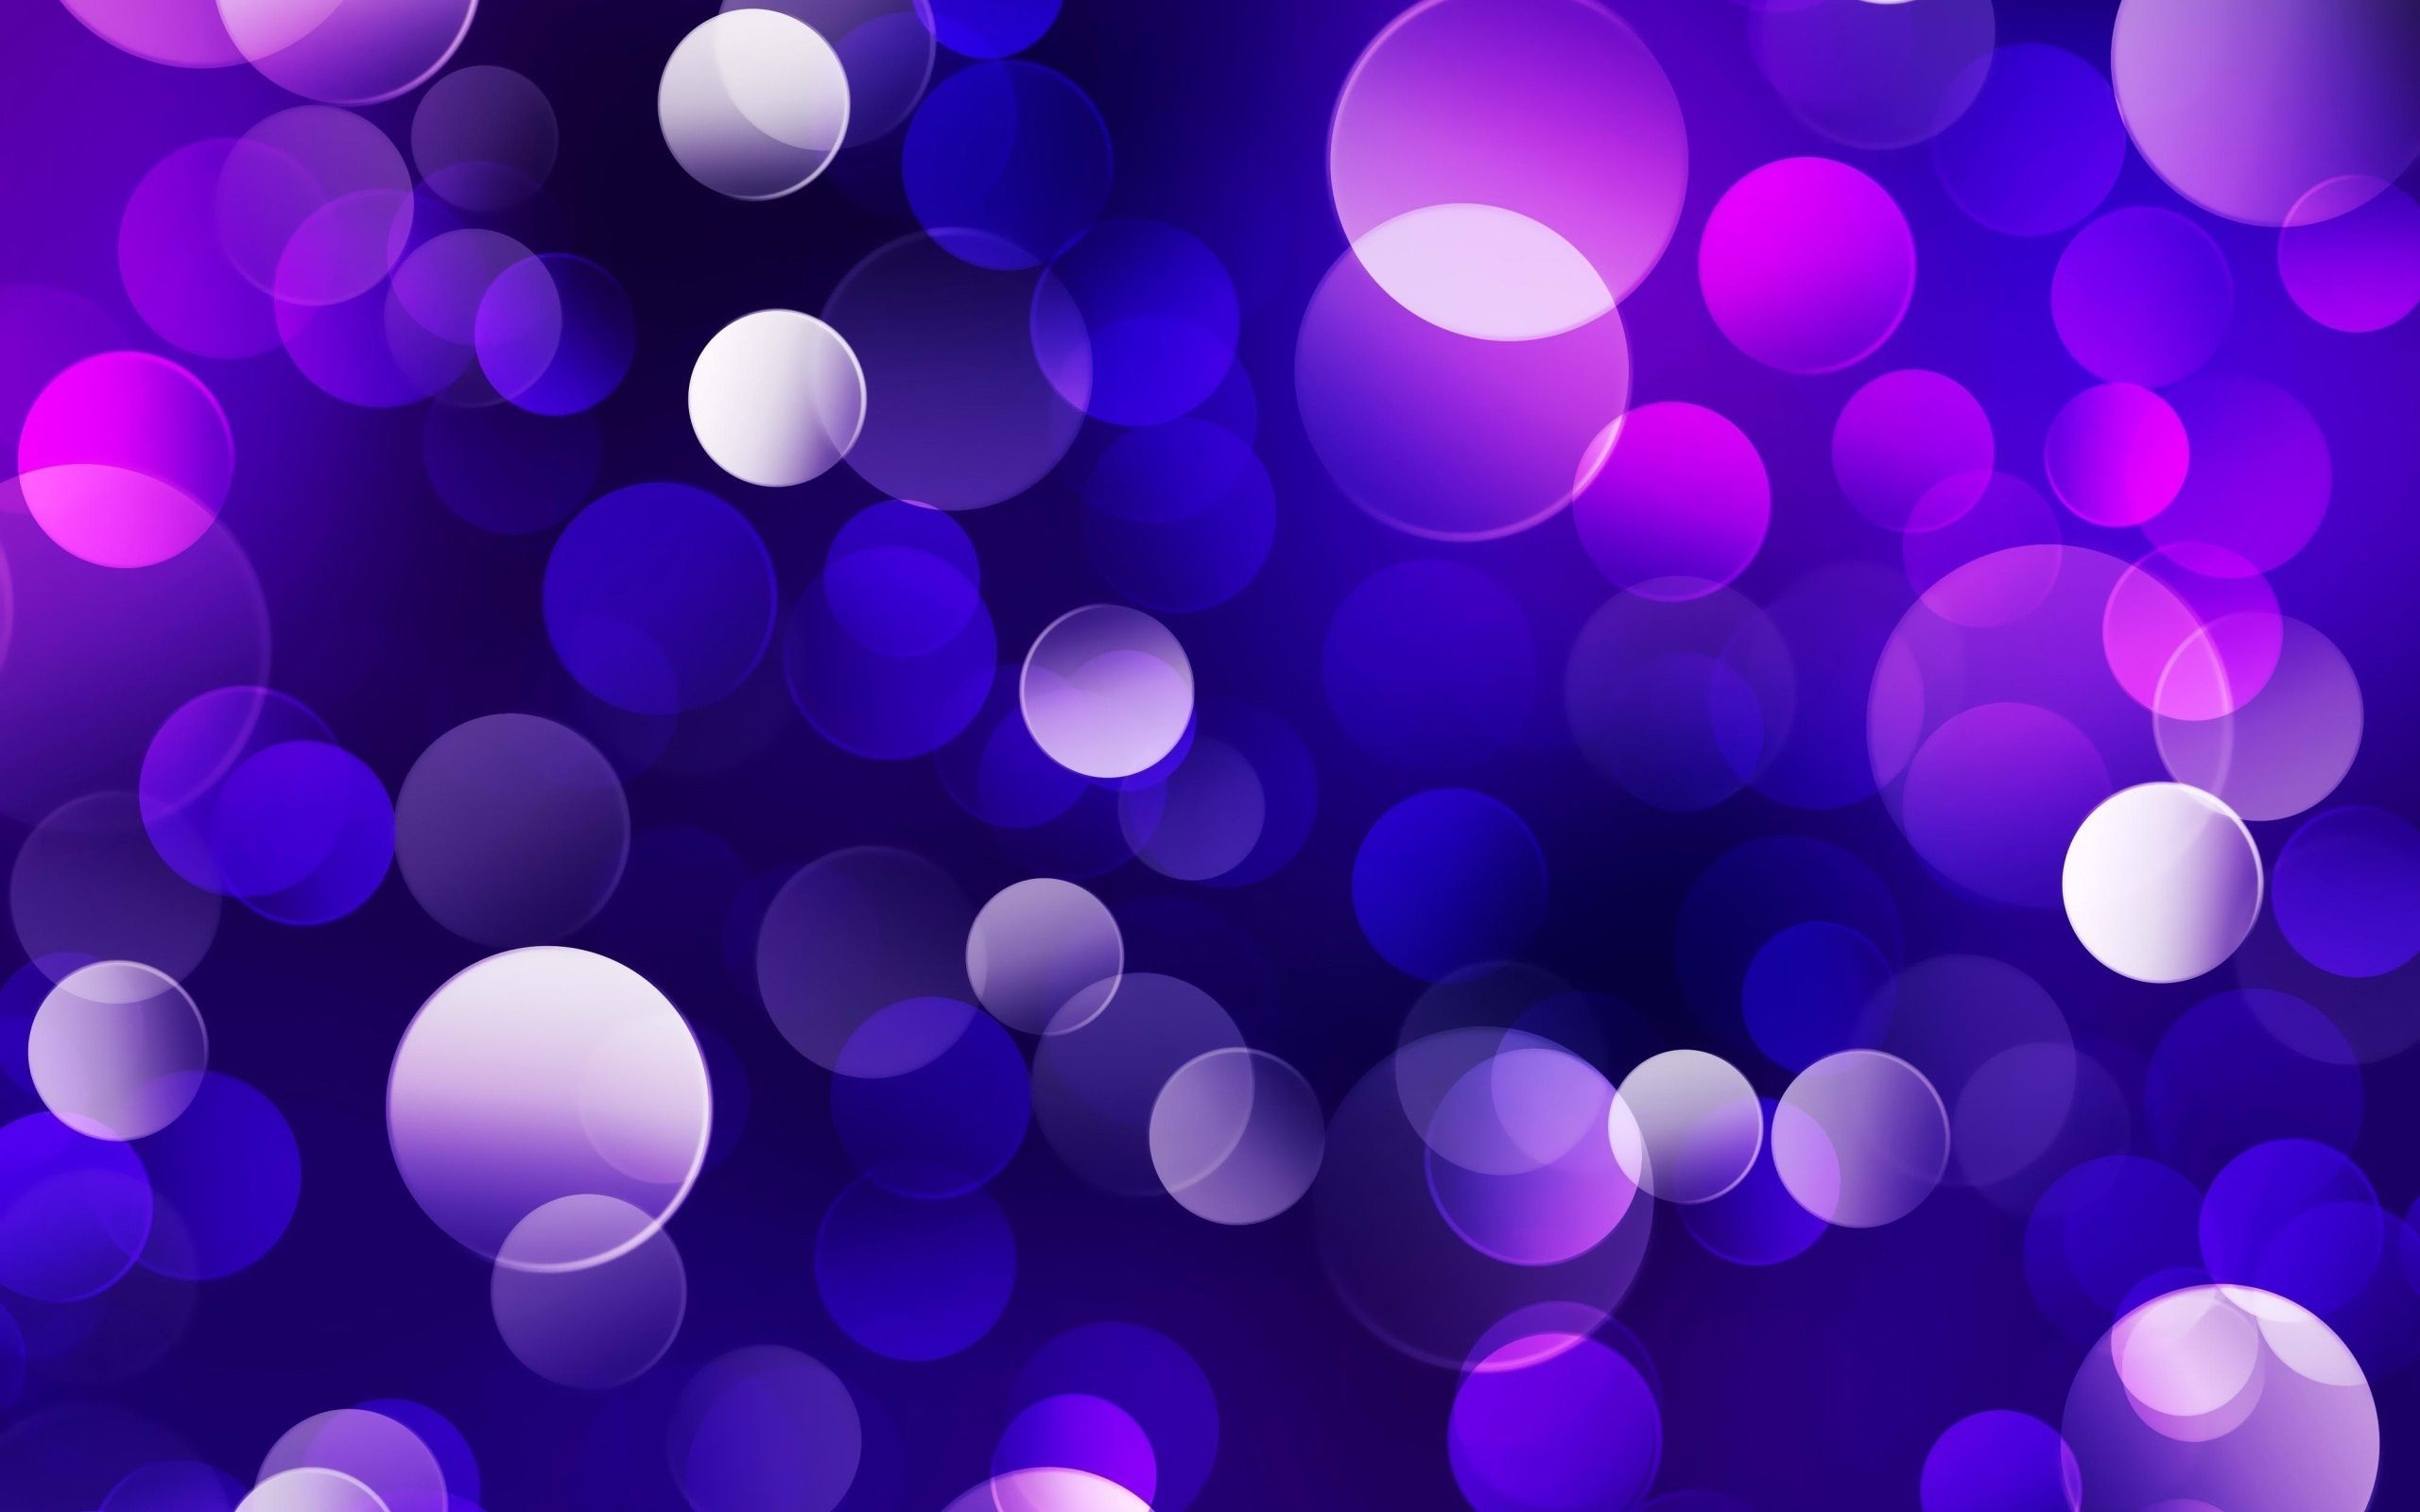 Abstract wallpaper girly purple wallpapers picture with hd abstract wallpaper girly purple wallpapers picture with hd voltagebd